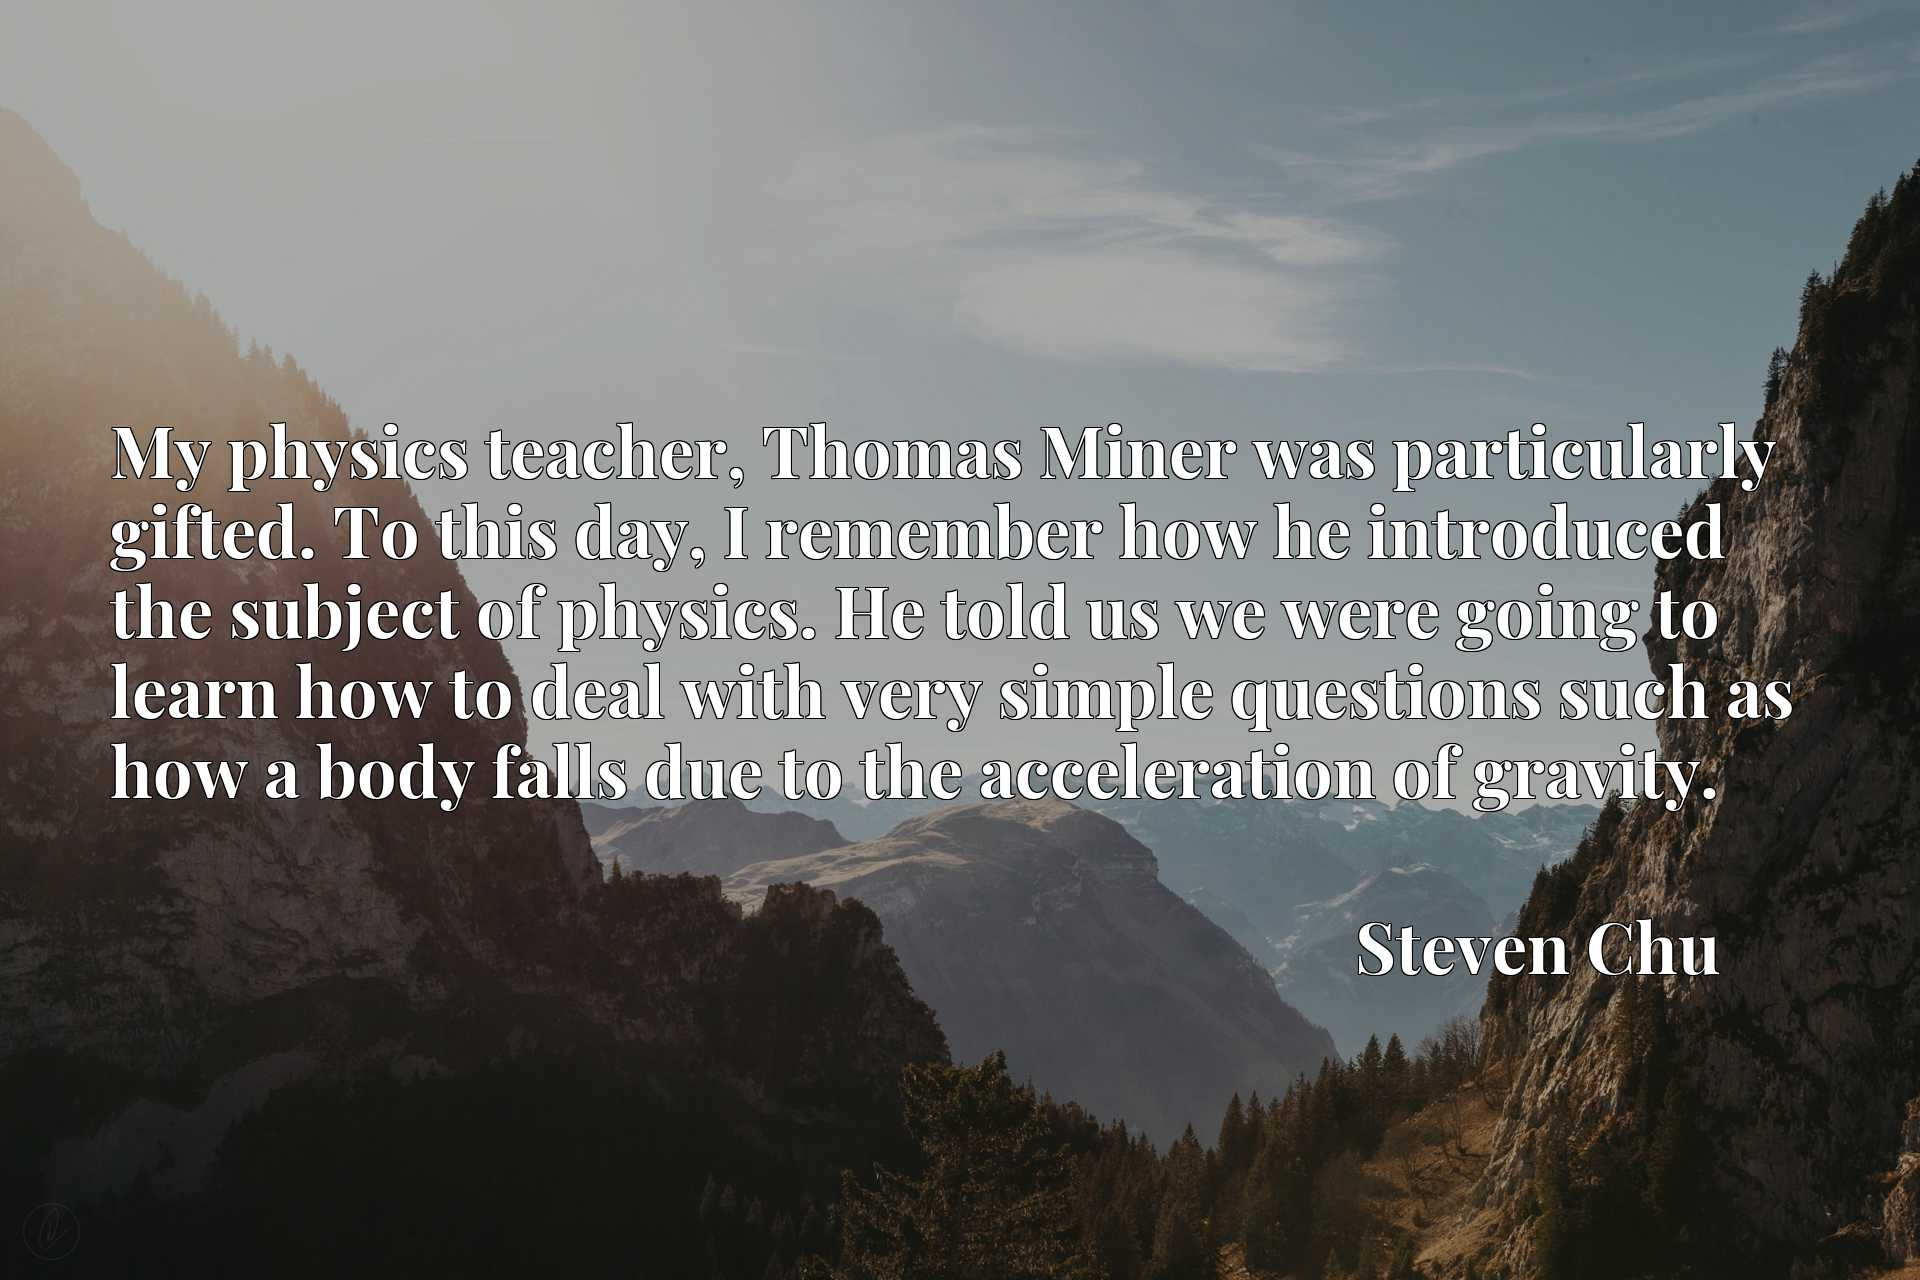 Quote Picture :My physics teacher, Thomas Miner was particularly gifted. To this day, I remember how he introduced the subject of physics. He told us we were going to learn how to deal with very simple questions such as how a body falls due to the acceleration of gravity.